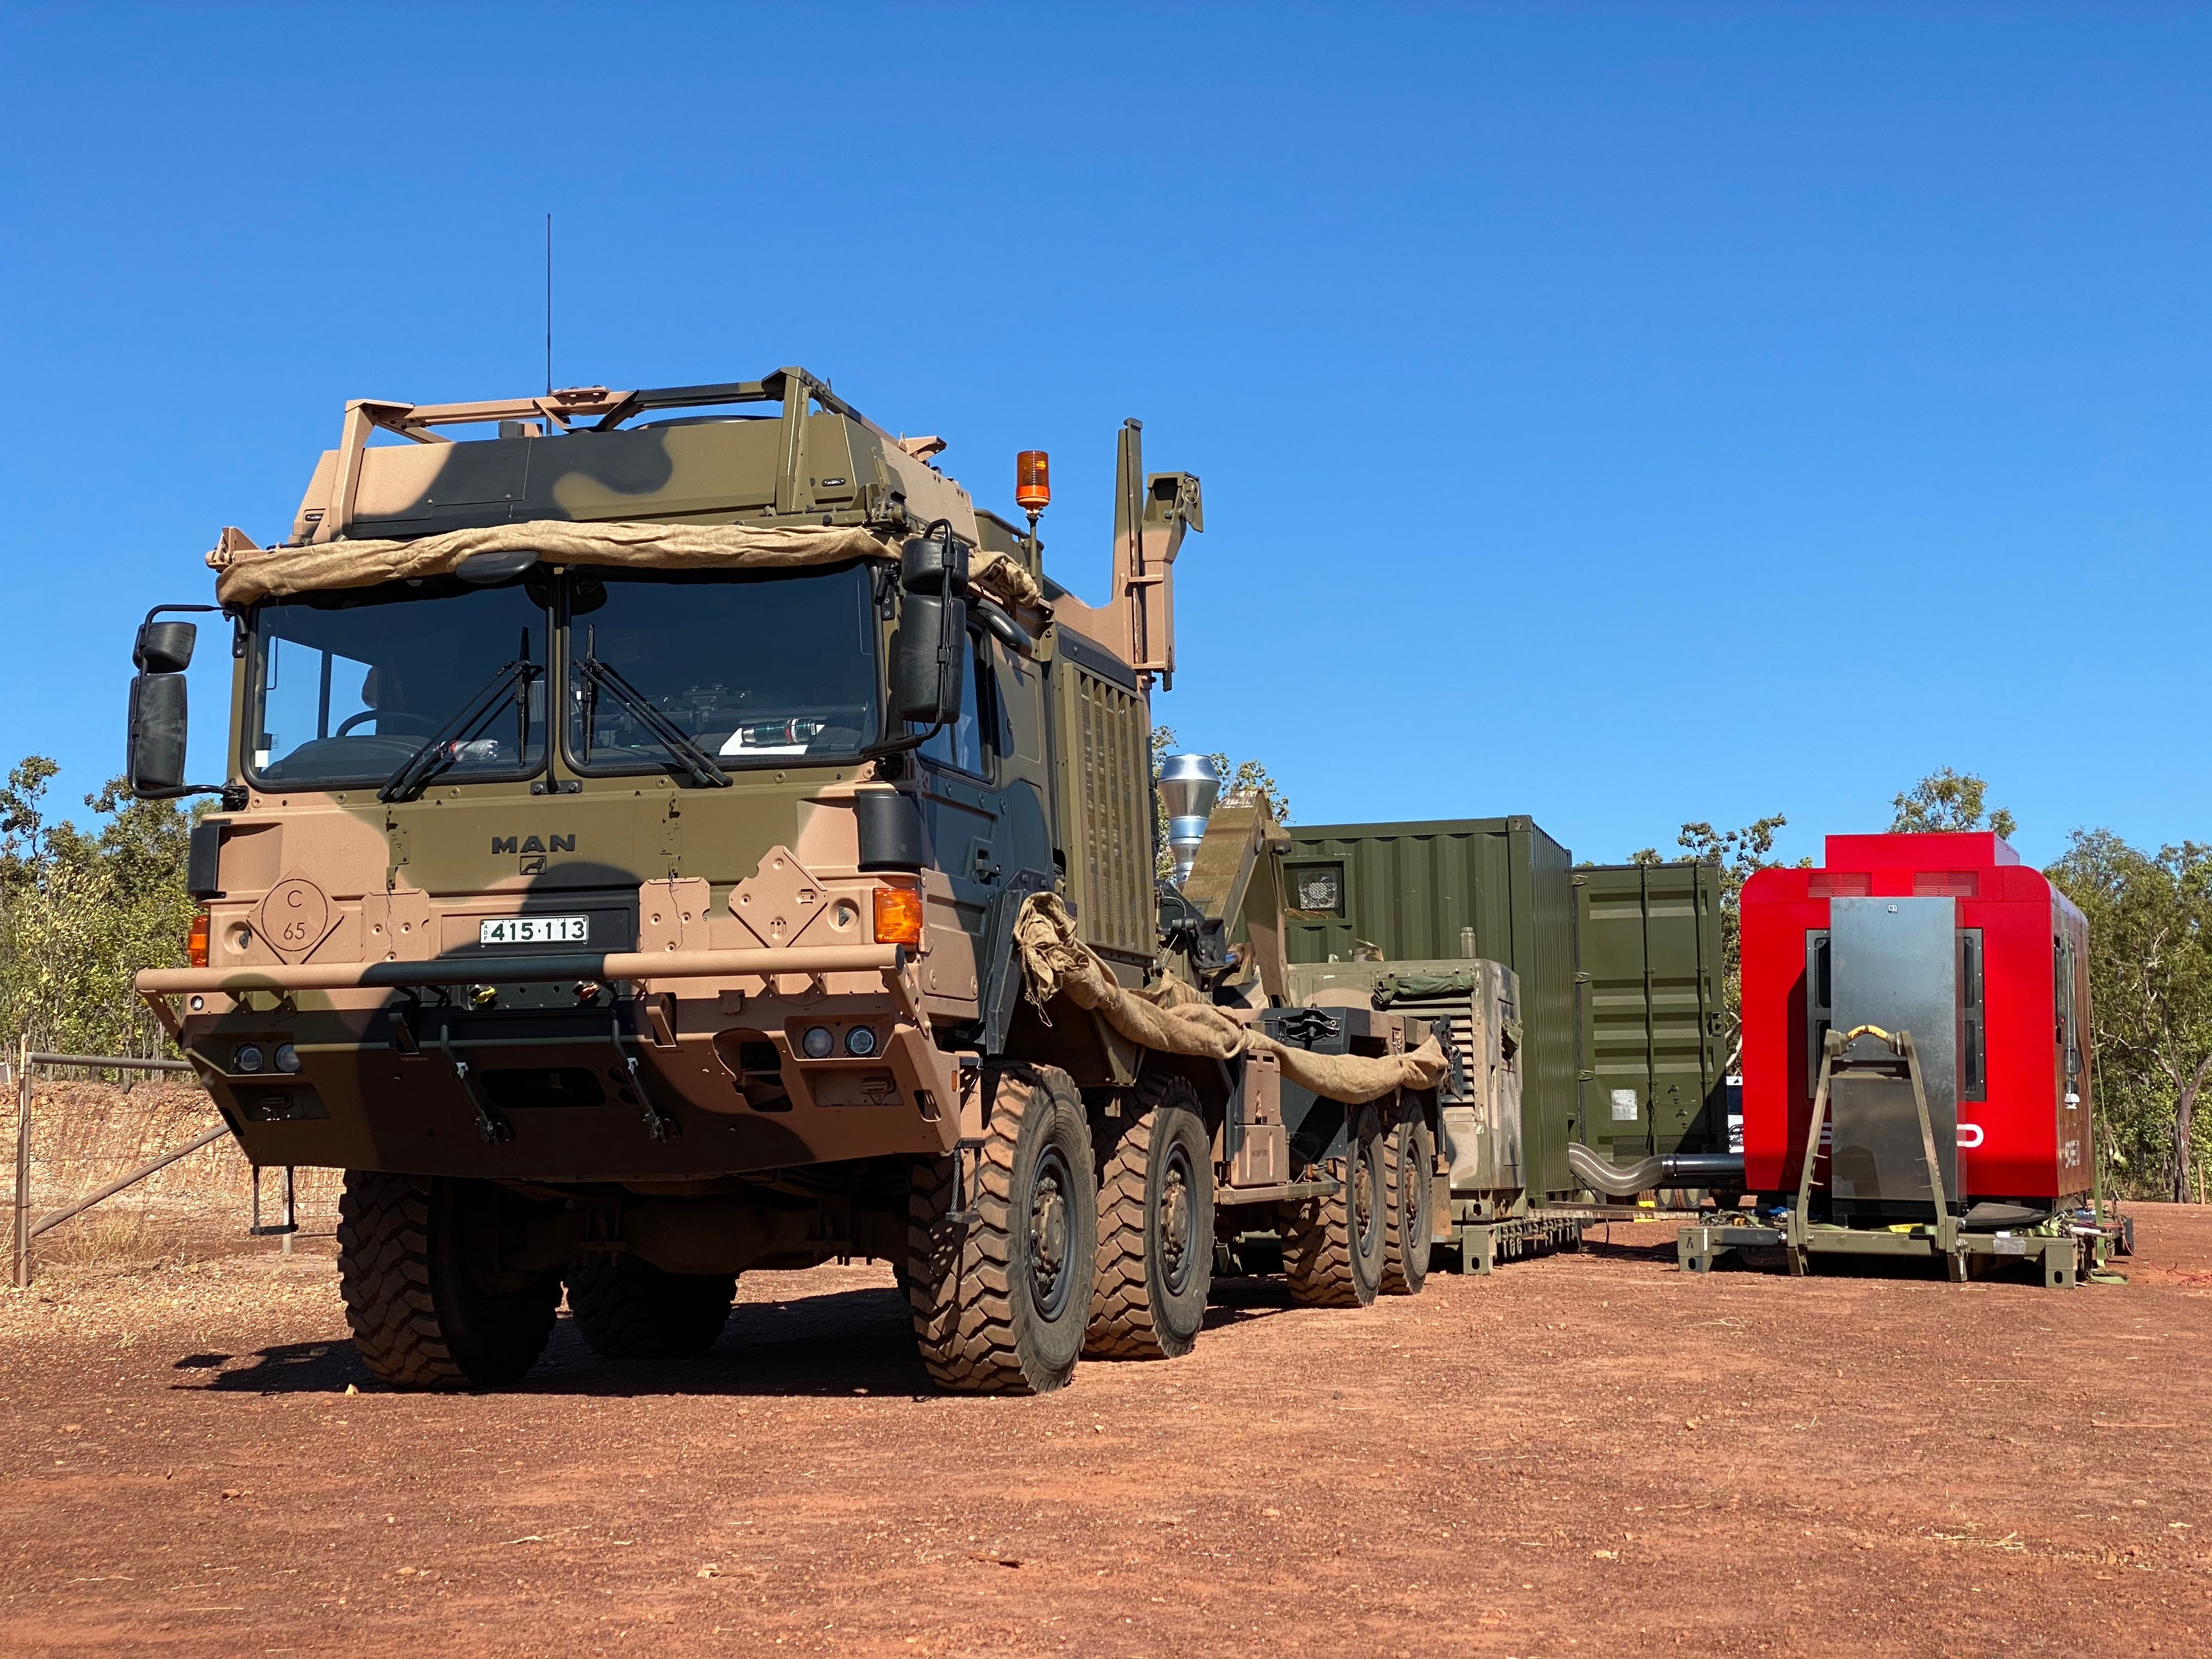 The SPEE3D system was trucked across Australia's Northern Territories, and was reportedly able to become operational within 30 minutes. Picture via SPEE3D.